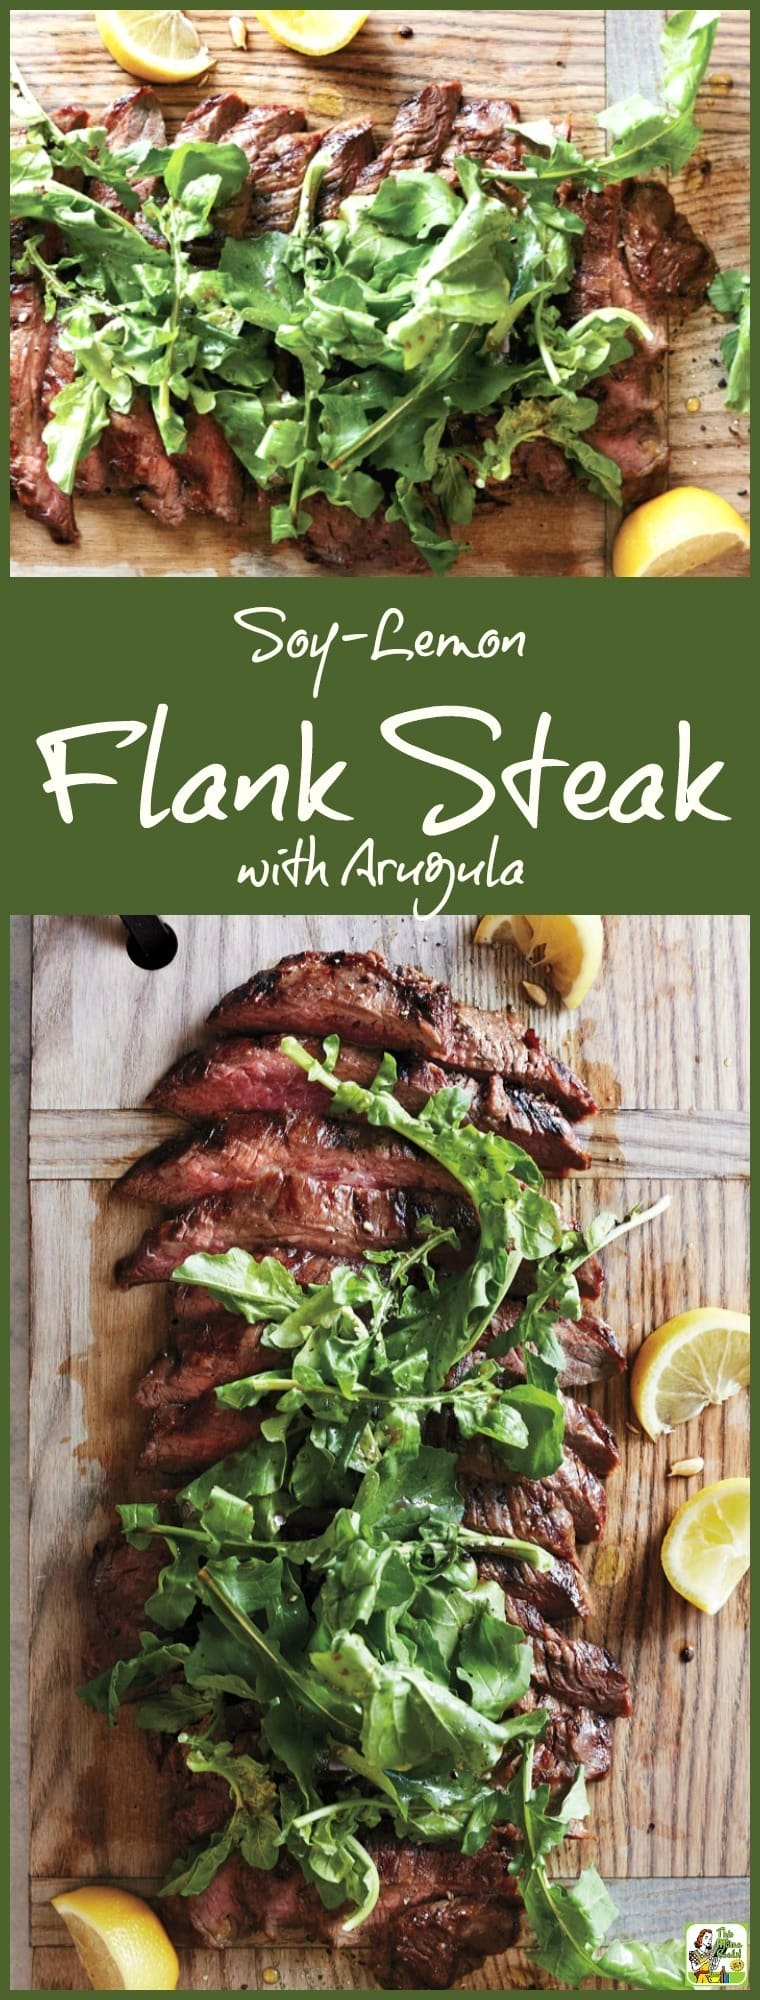 Love to grill? Then you\'ll enjoy making this easy Soy-Lemon Flank Steak with Arugula recipe. Super simple preparation. Easy enough to make in the morning before work or when you get home before dinner. Use as a weeknight dinner recipe or triple for the perfect backyard barbecue grilling recipe!